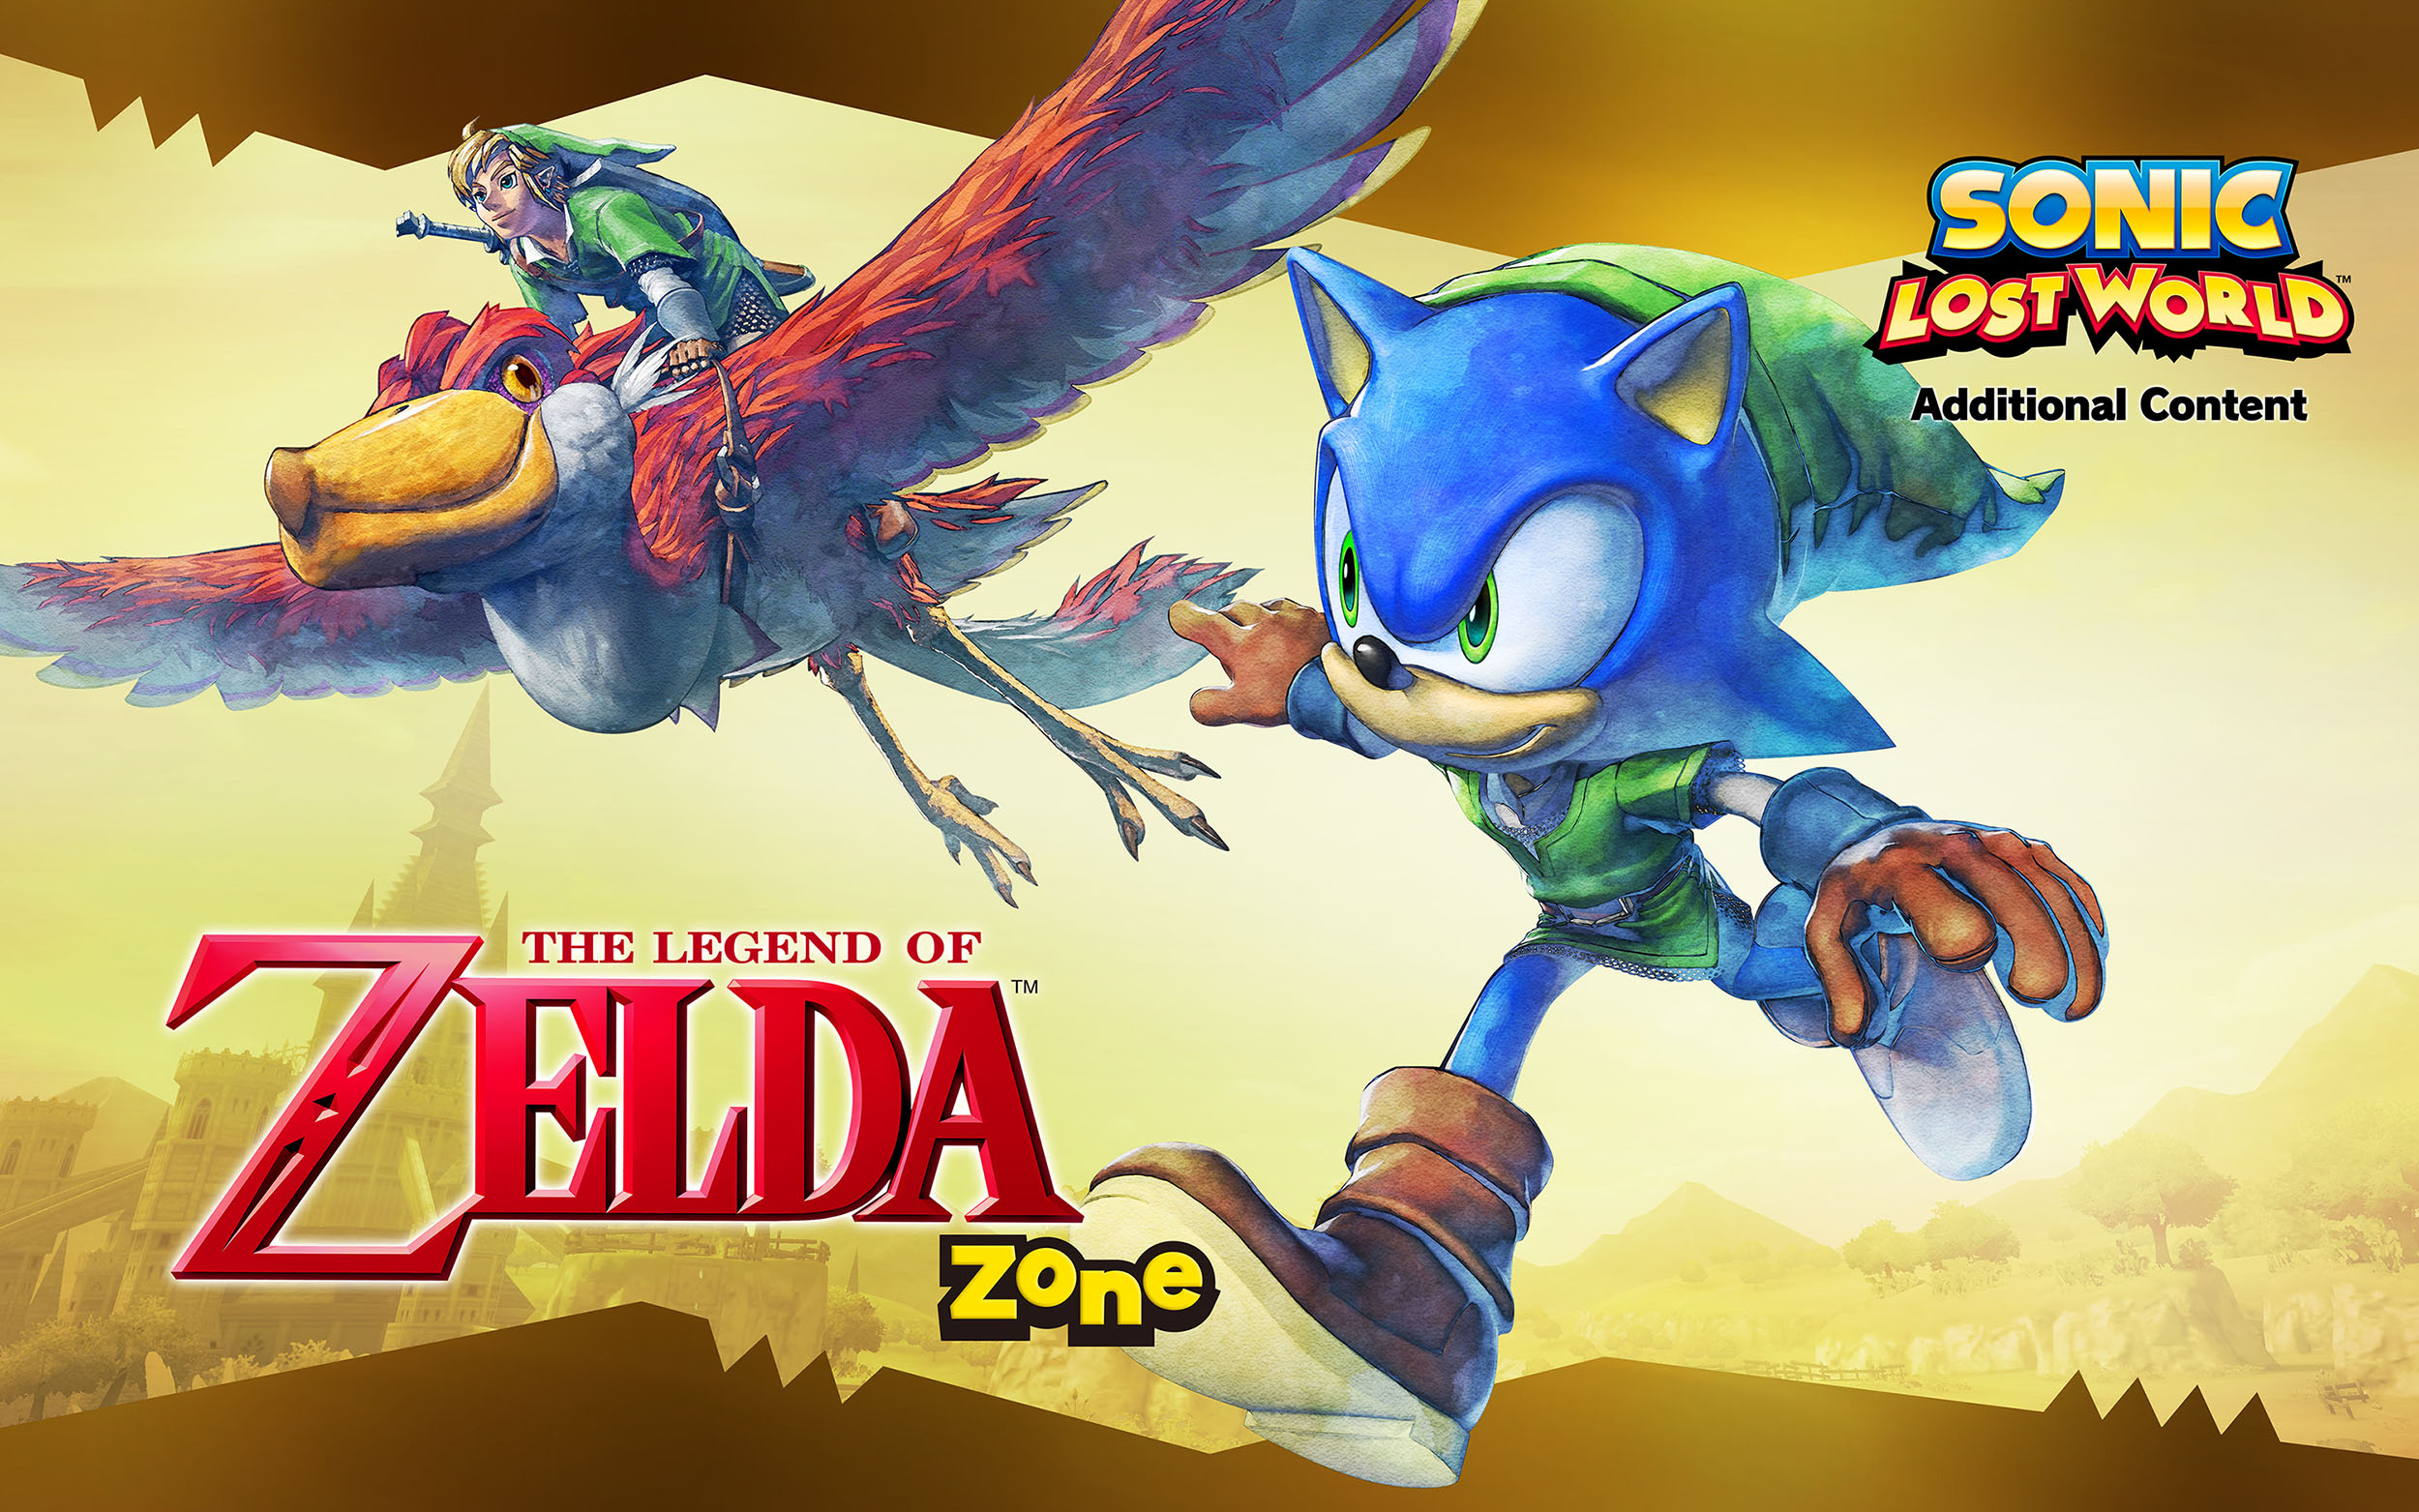 Sonic The Lost World Zelda DLC on Wii U